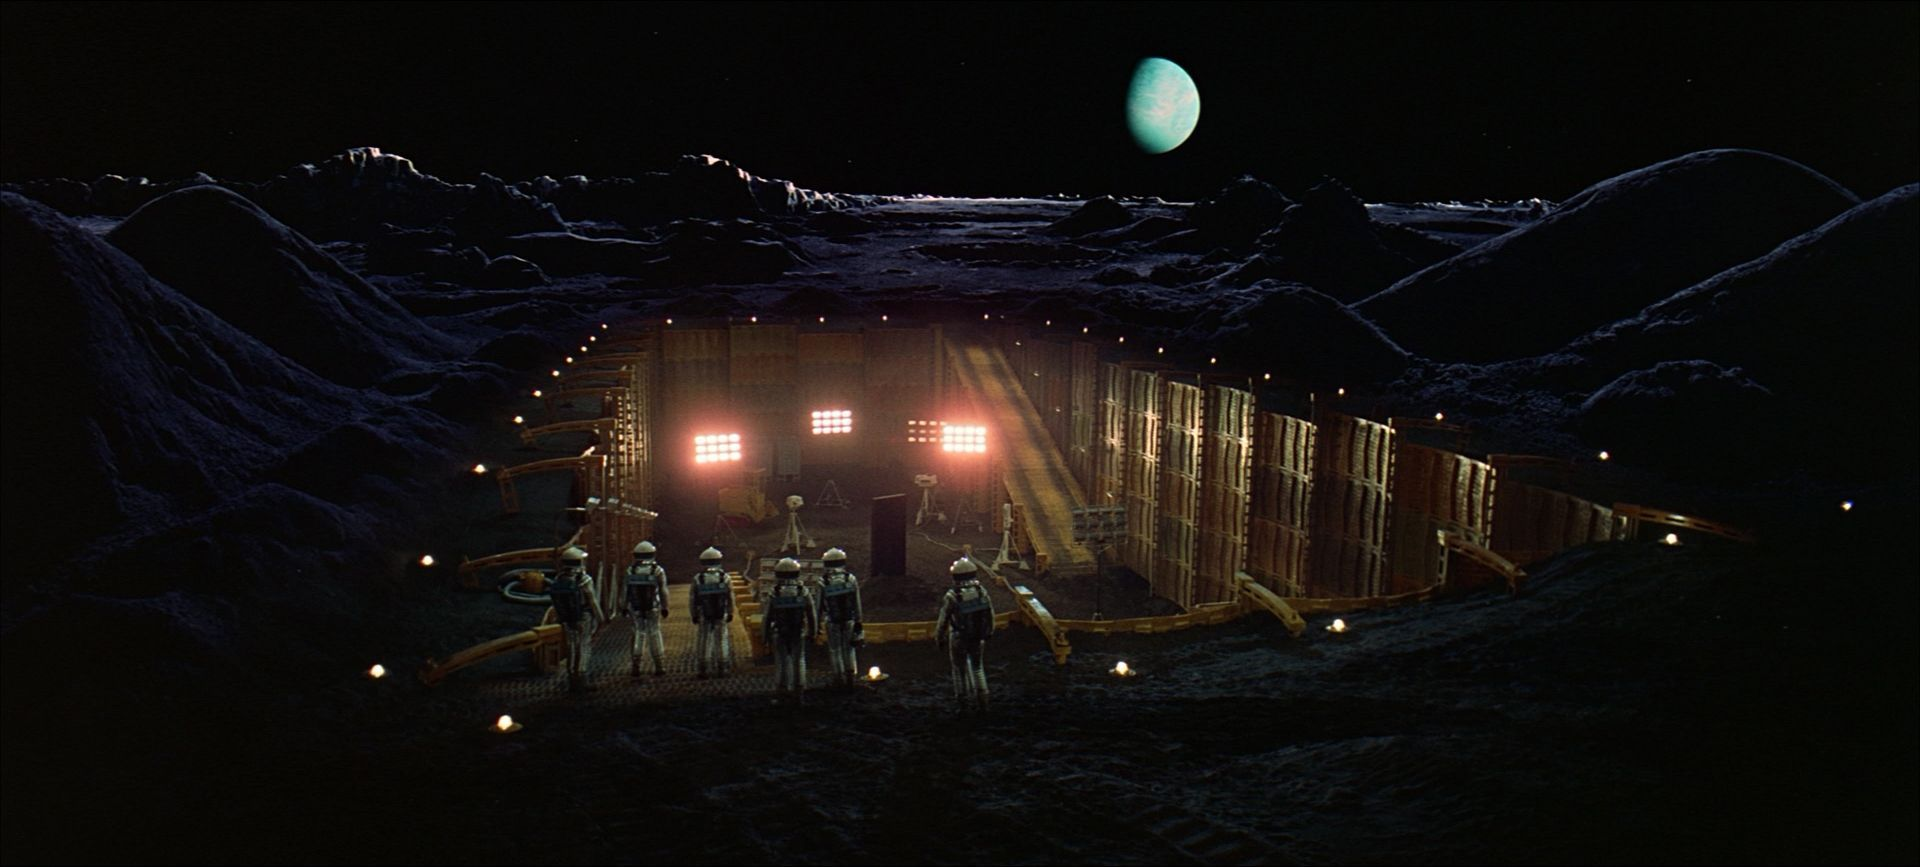 Image Result For 2001 Space Odyssey Screengrab 2001 A Space Odyssey Space Odyssey Odyssey